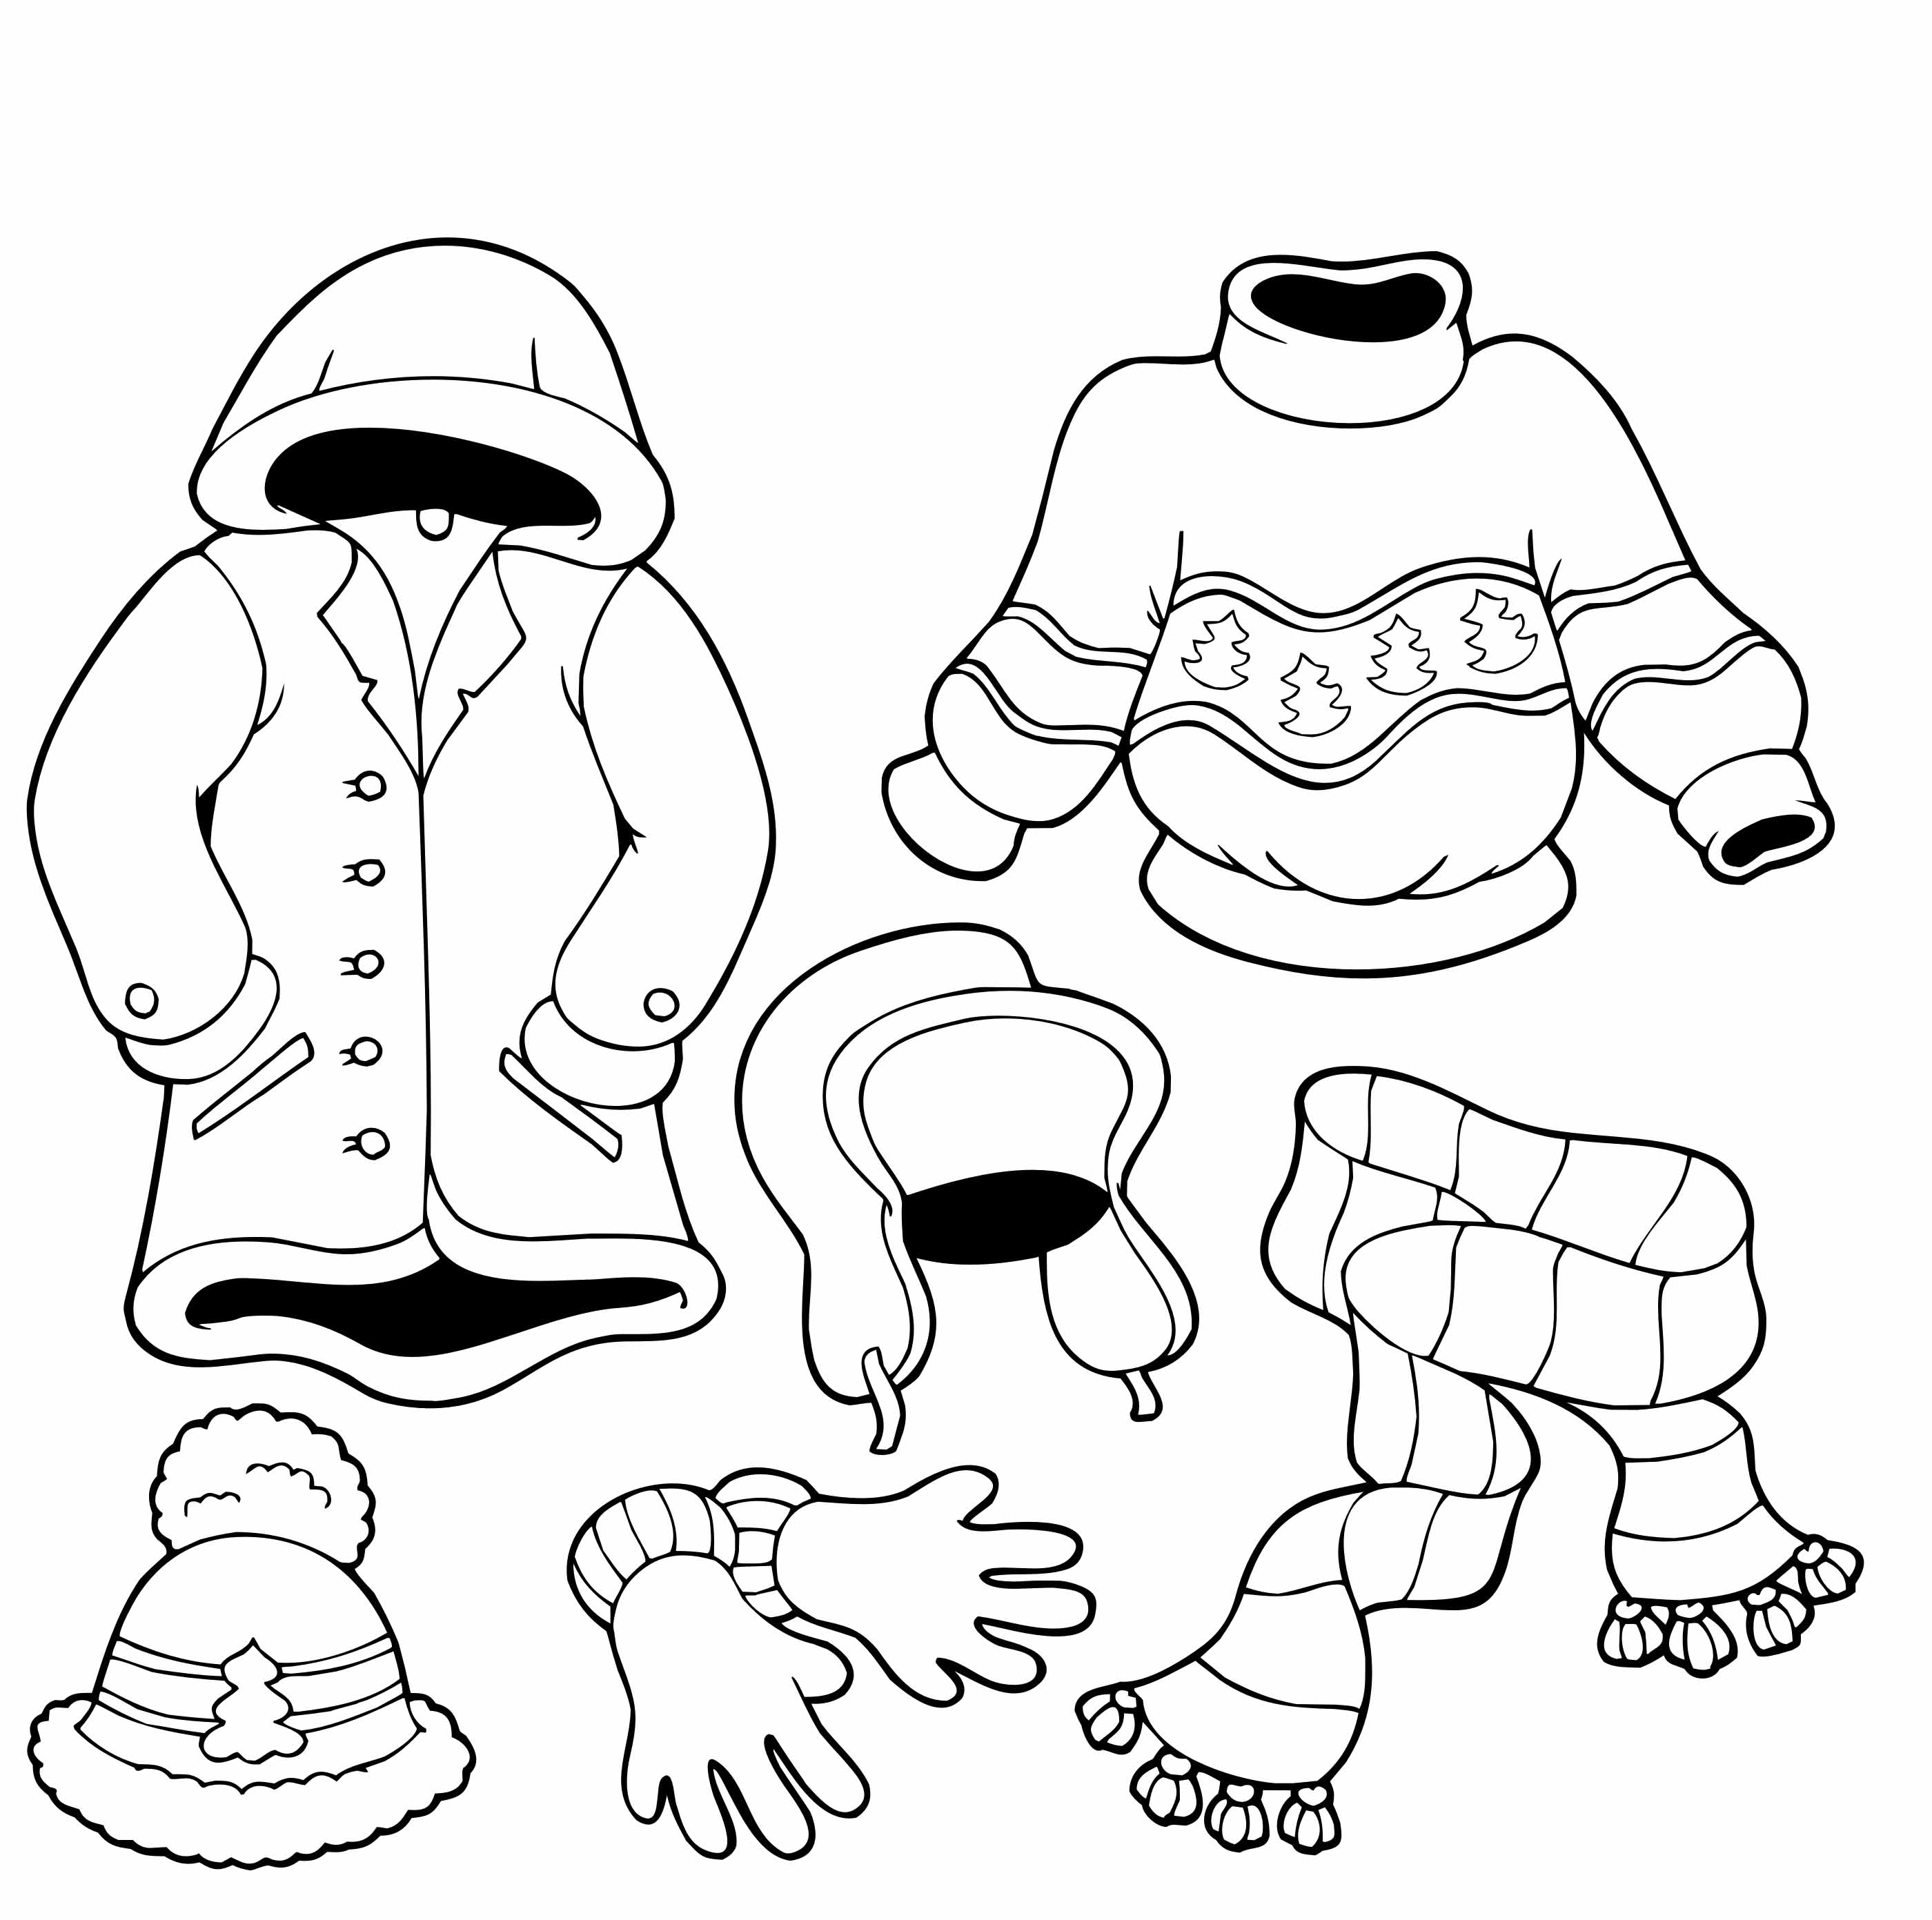 Winter clipart winter outfit The  Coloring Pages Cold